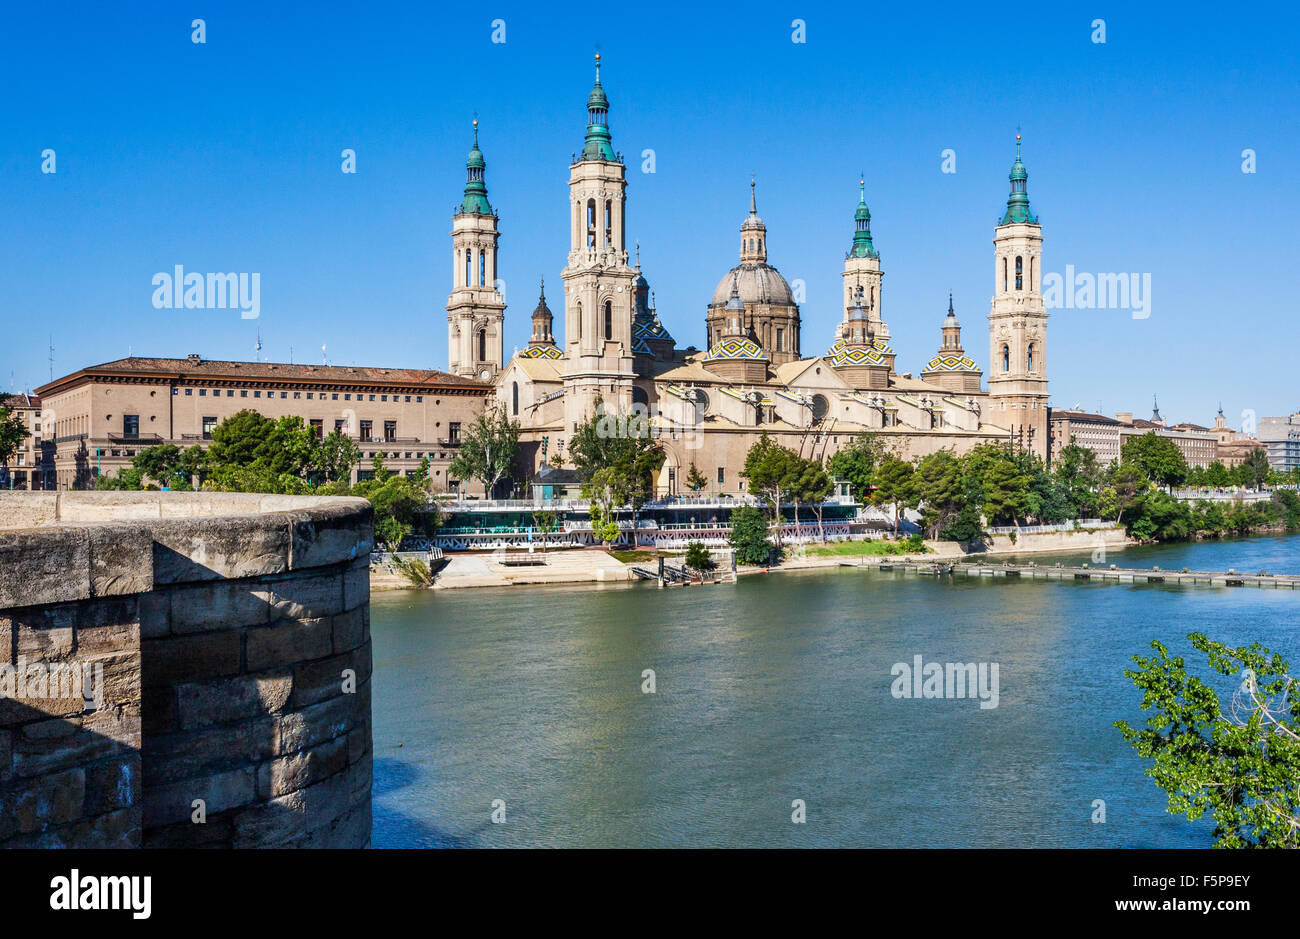 Spain, Aragon, Zaragoza, view of the Baroque style Basilica-Cathedral of Our Lady of the Pillar across the Ebro - Stock Image